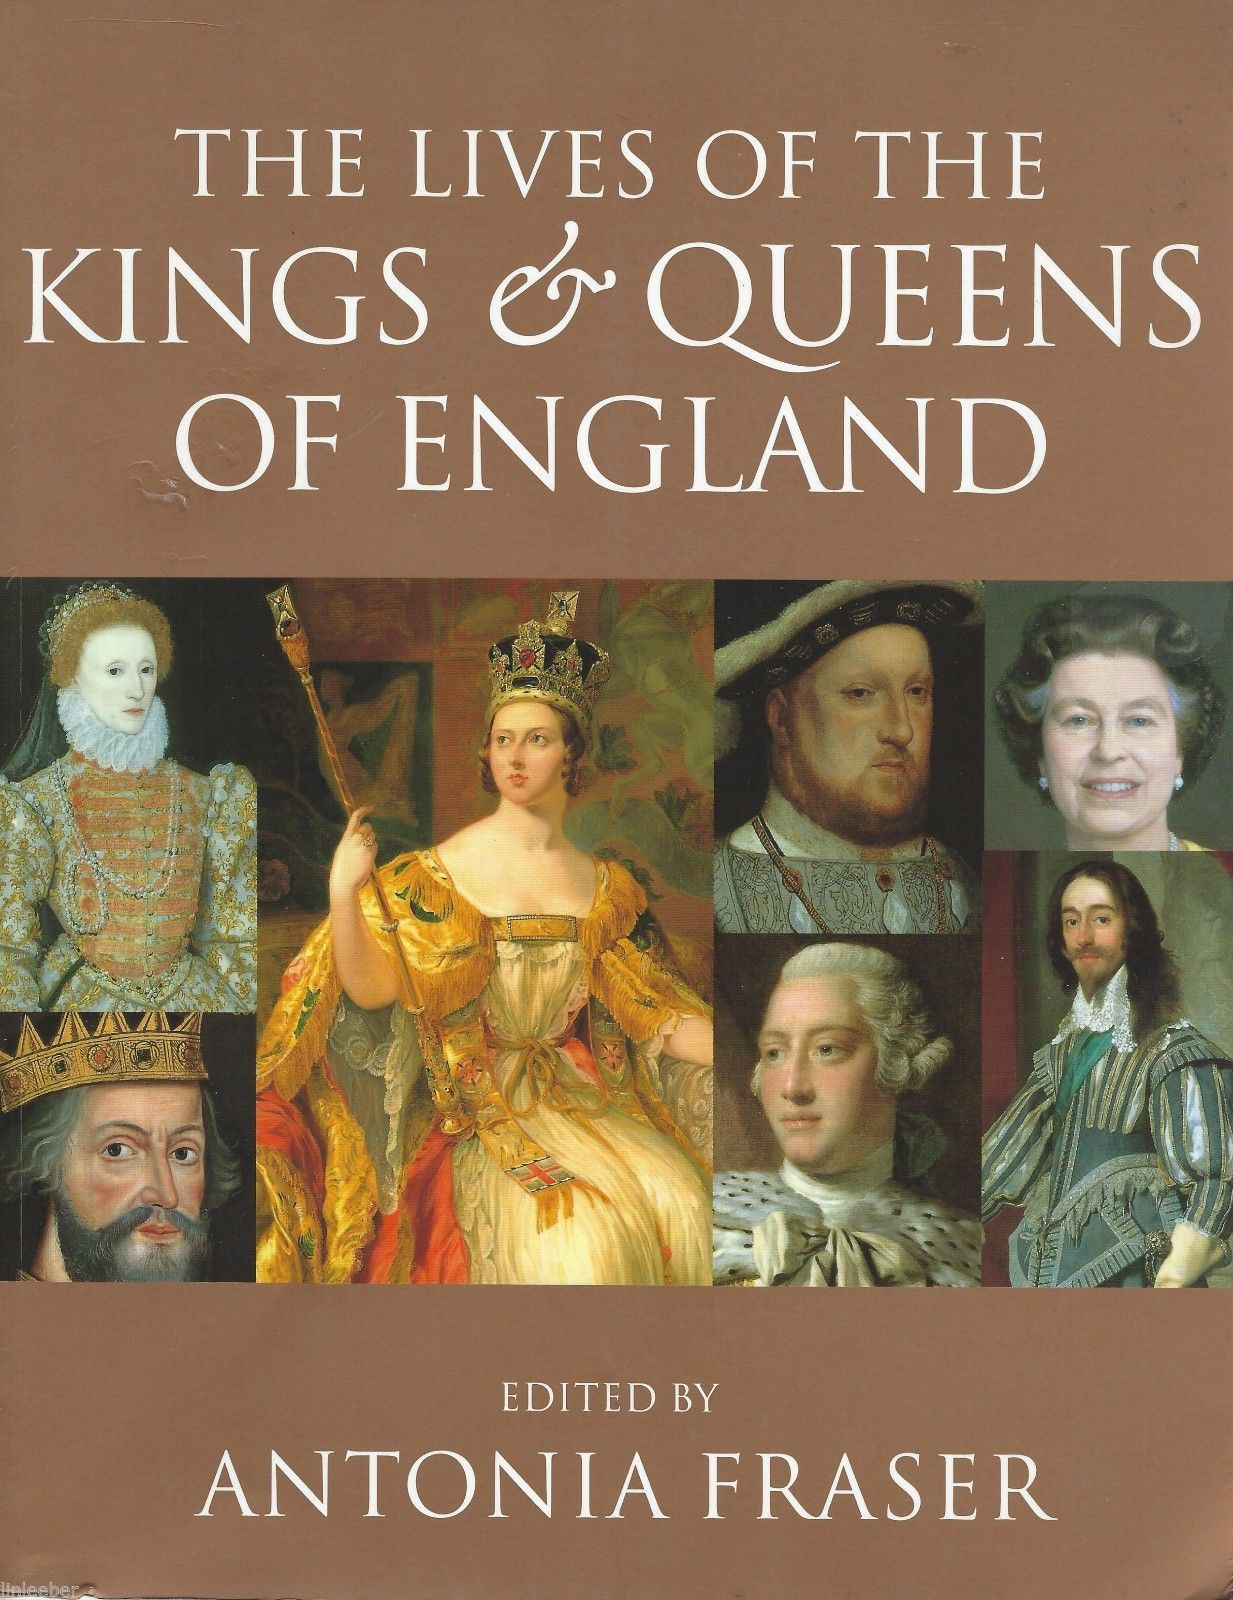 The Lives of the Kings and Queens of England;Antonia Fraser; English royalty